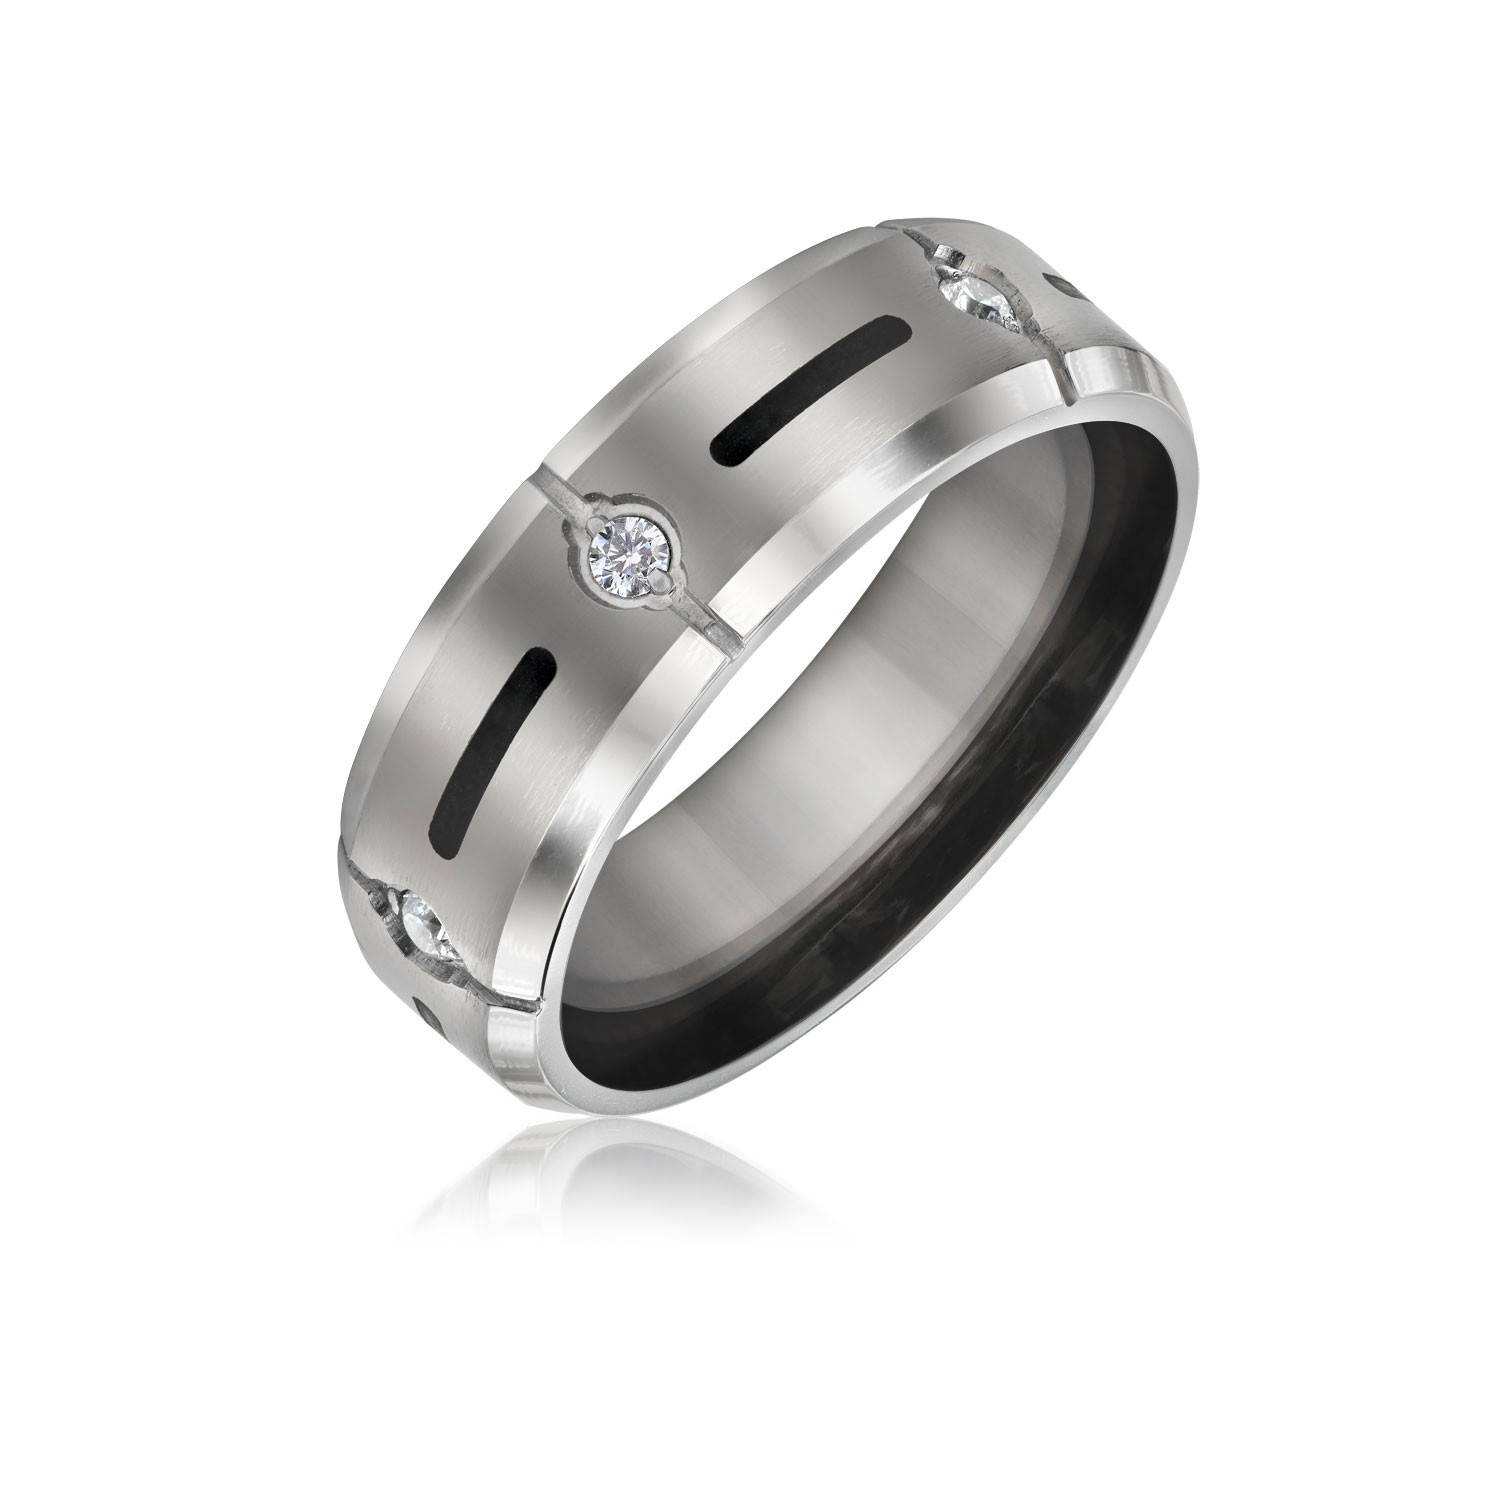 Mens Titanium Ring Cz Wedding Band Ring With Resin Inlay 7Mm For 7Mm Titanium Wedding Bands (Gallery 9 of 15)